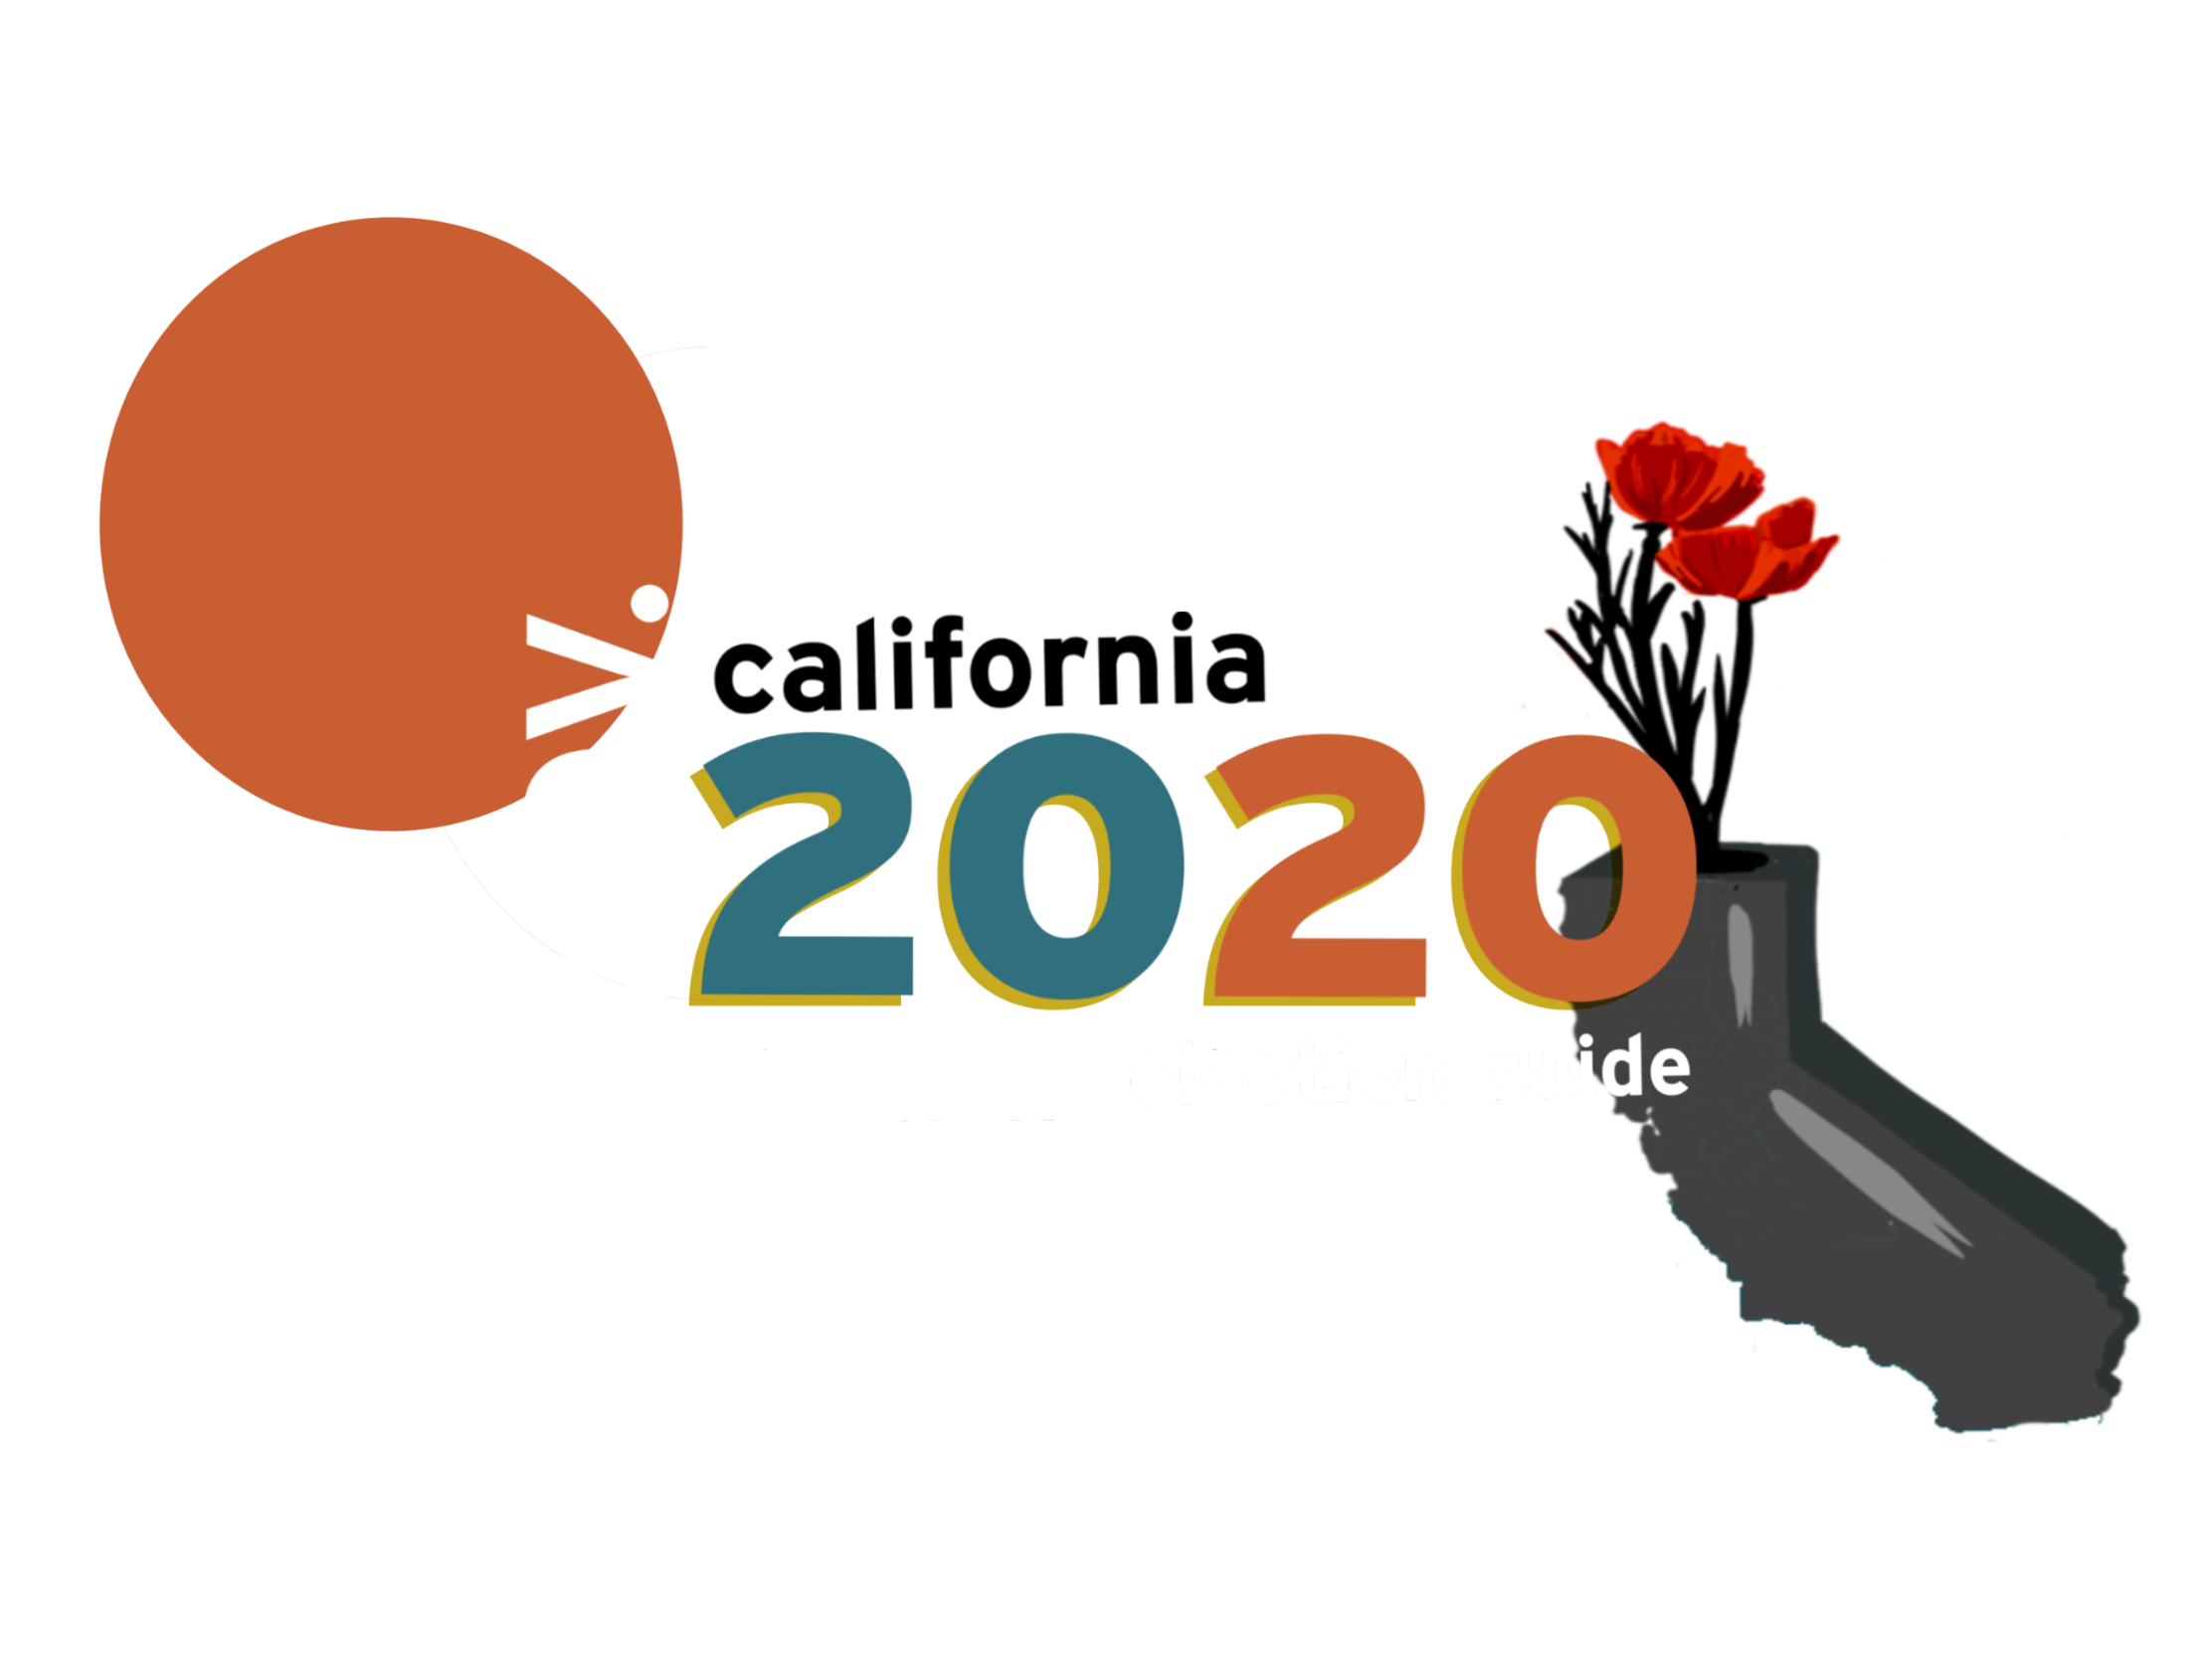 California Election 2020 Guide logo